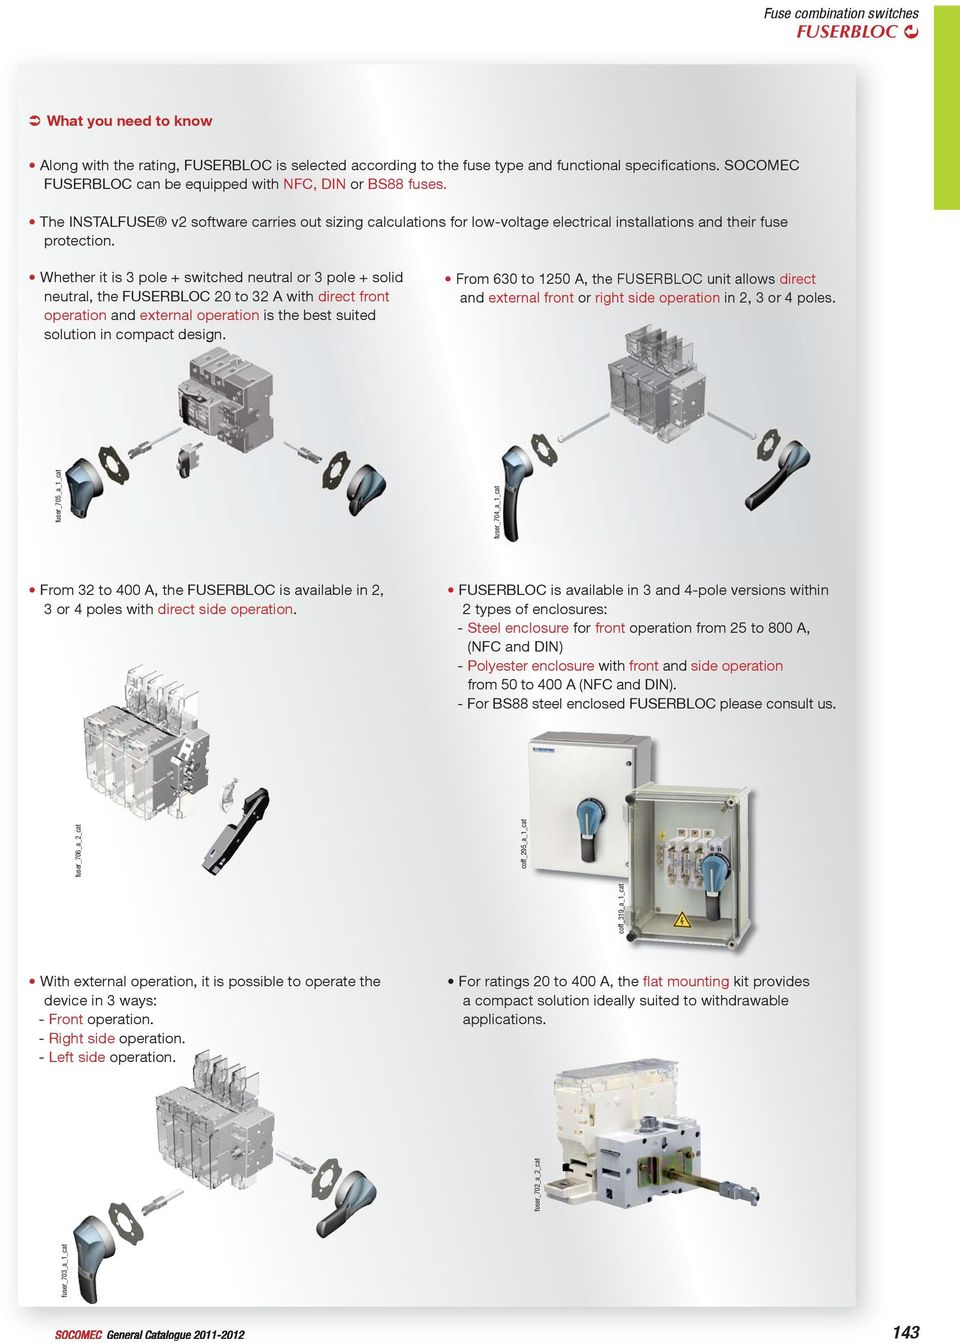 Fuserbloc 20 To 1250 A Manual Operation 142 General Catalogue Colt 60 Amp Fuse Box Whether It Is Pole Switched Or Solid The 2